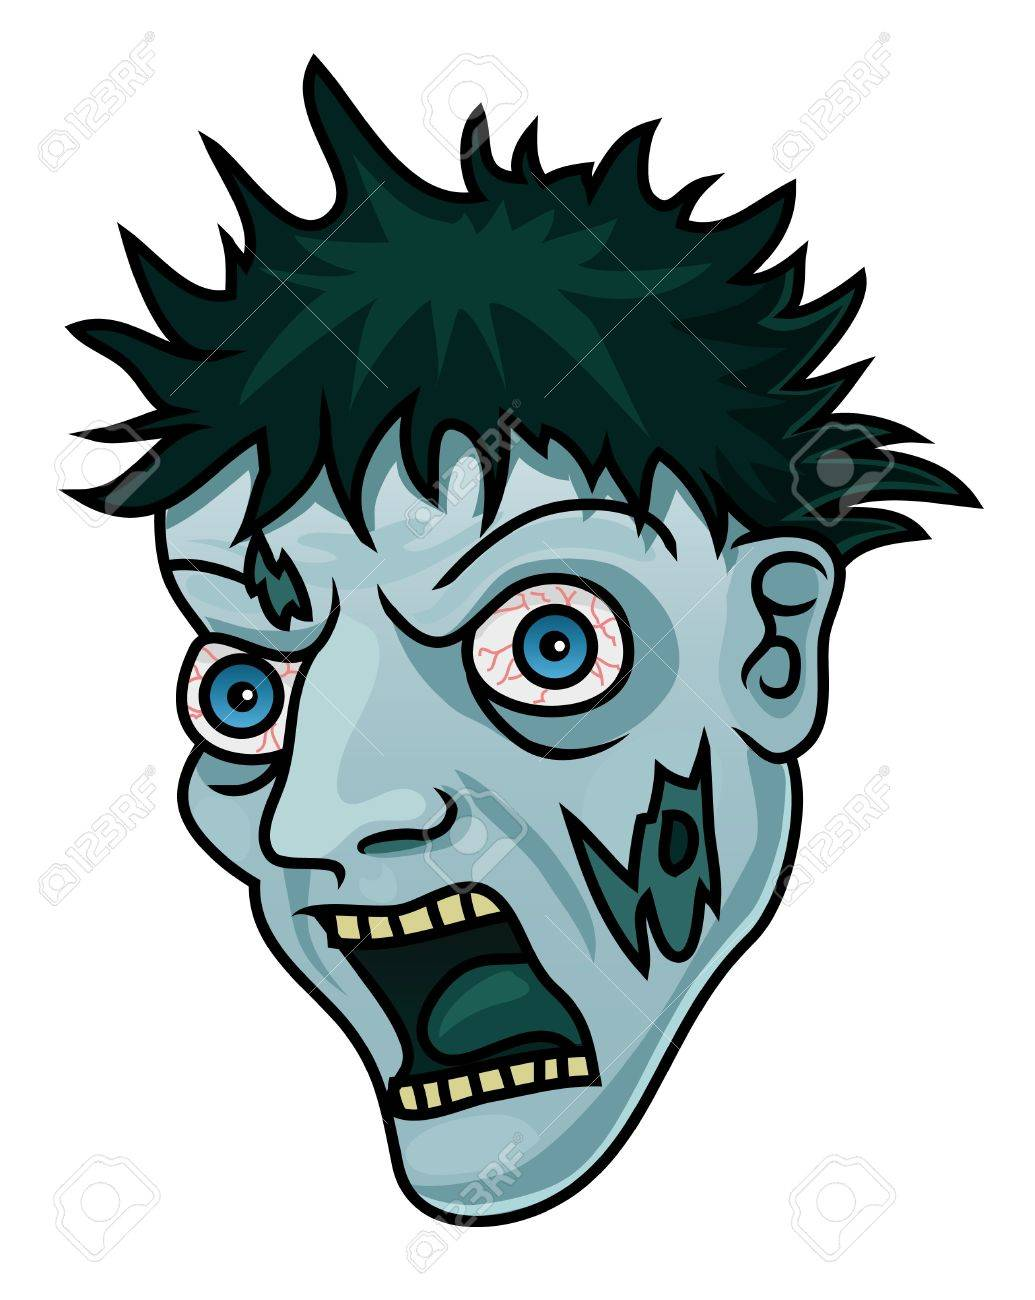 A Cartoon Halloween Zombie Head Or Mask Royalty Free Cliparts ...